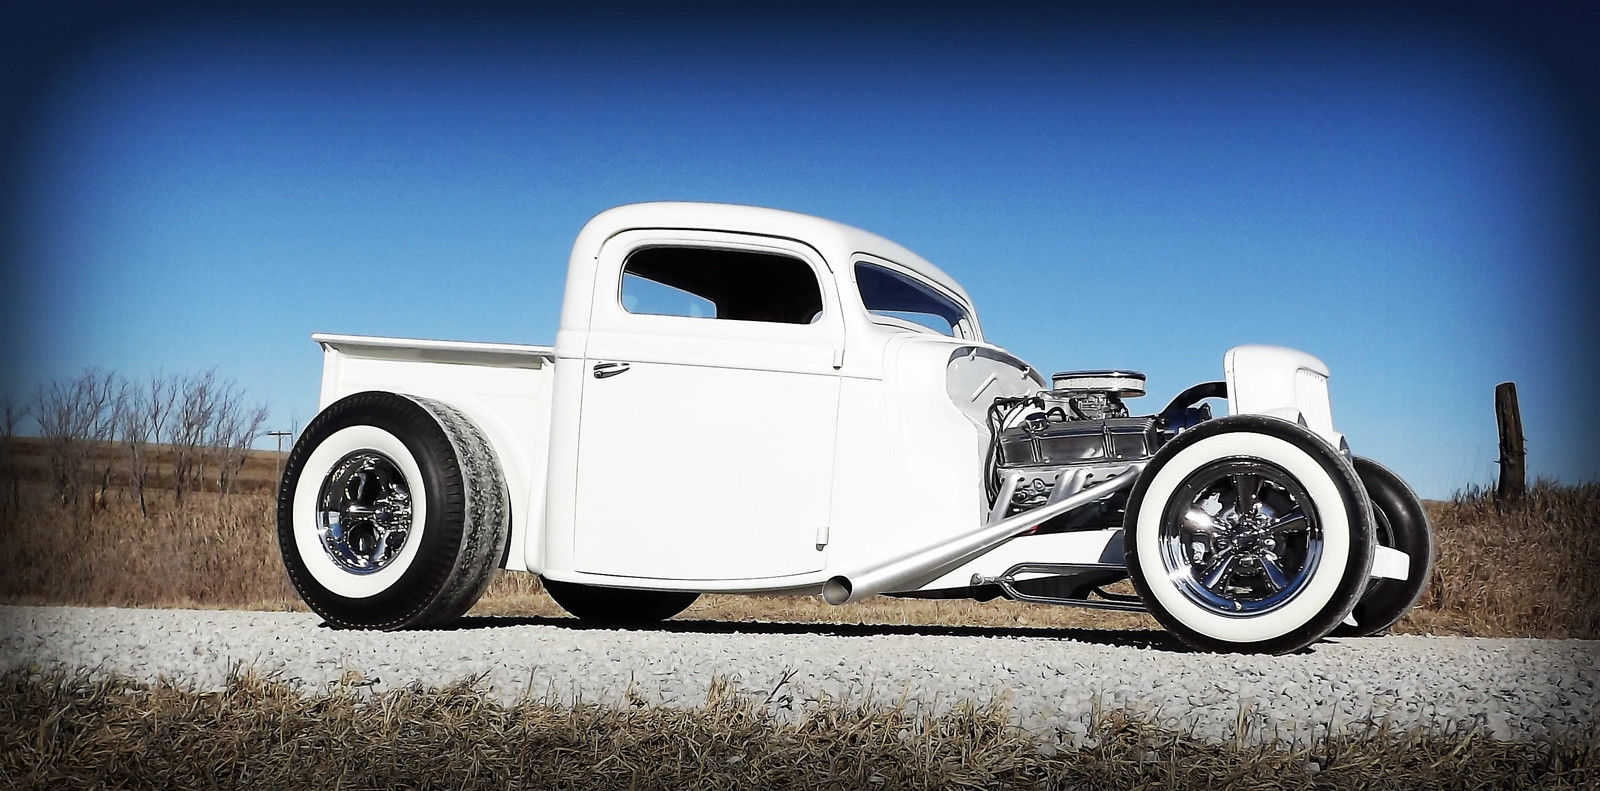 30419 1936 Ford Pickup No Reserve Hot Rod Custom Traditional Raked Chopped Street Rat further Discussion T16045 ds607122 together with Testing A Gas Golf Cart Solenoid furthermore 1 875 Id Coil Springs as well Crankshaft Camshaft Position Sensor Testing Made Easy. on car coil location